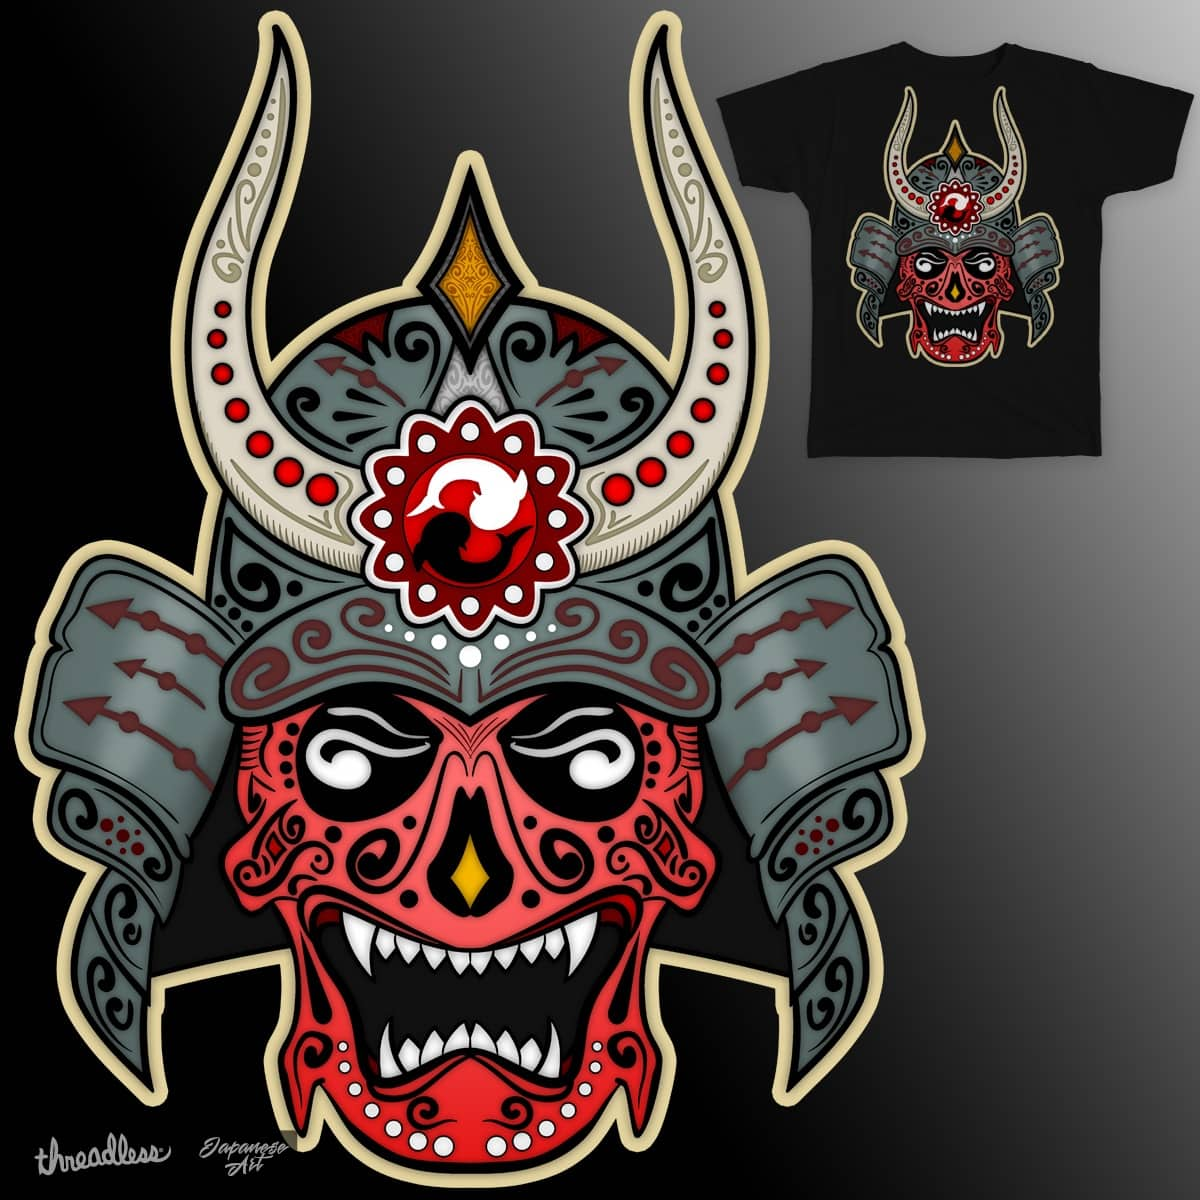 Samurai demon sugar skull by patrick hiller on threadless